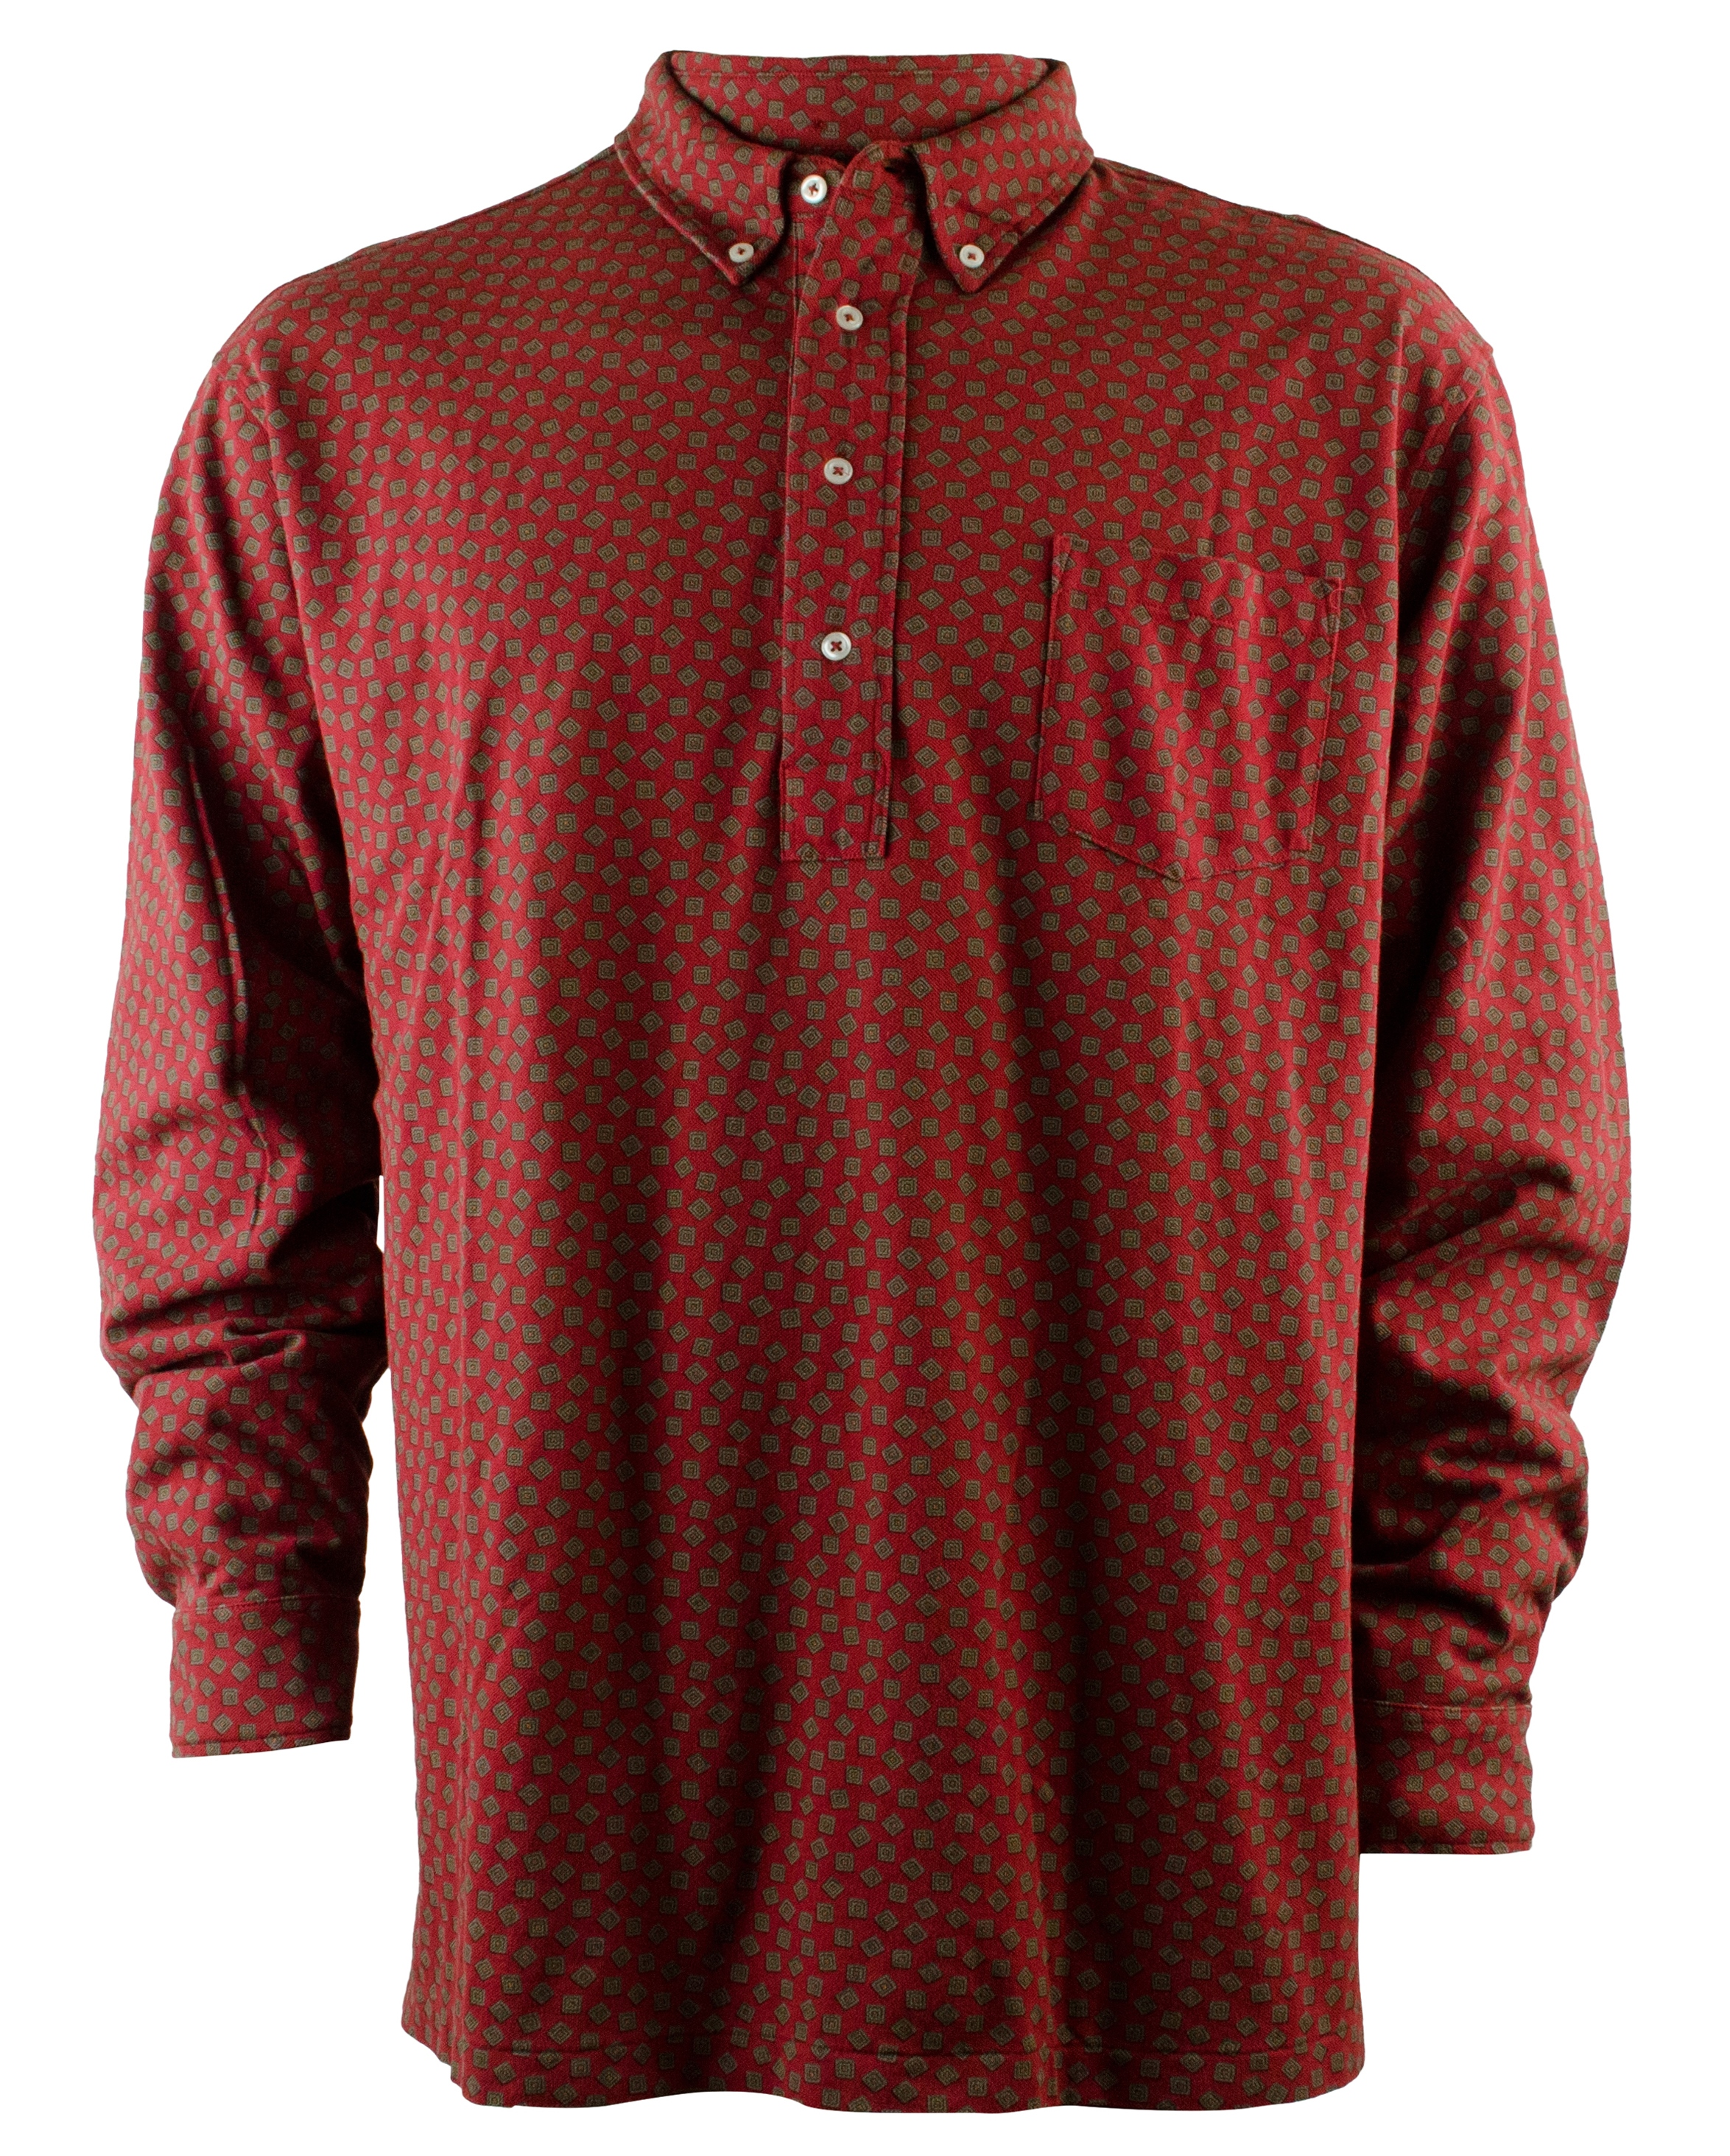 Polo ralph lauren men 39 s big and tall printed popover shirt for Xlt long sleeve polo shirts